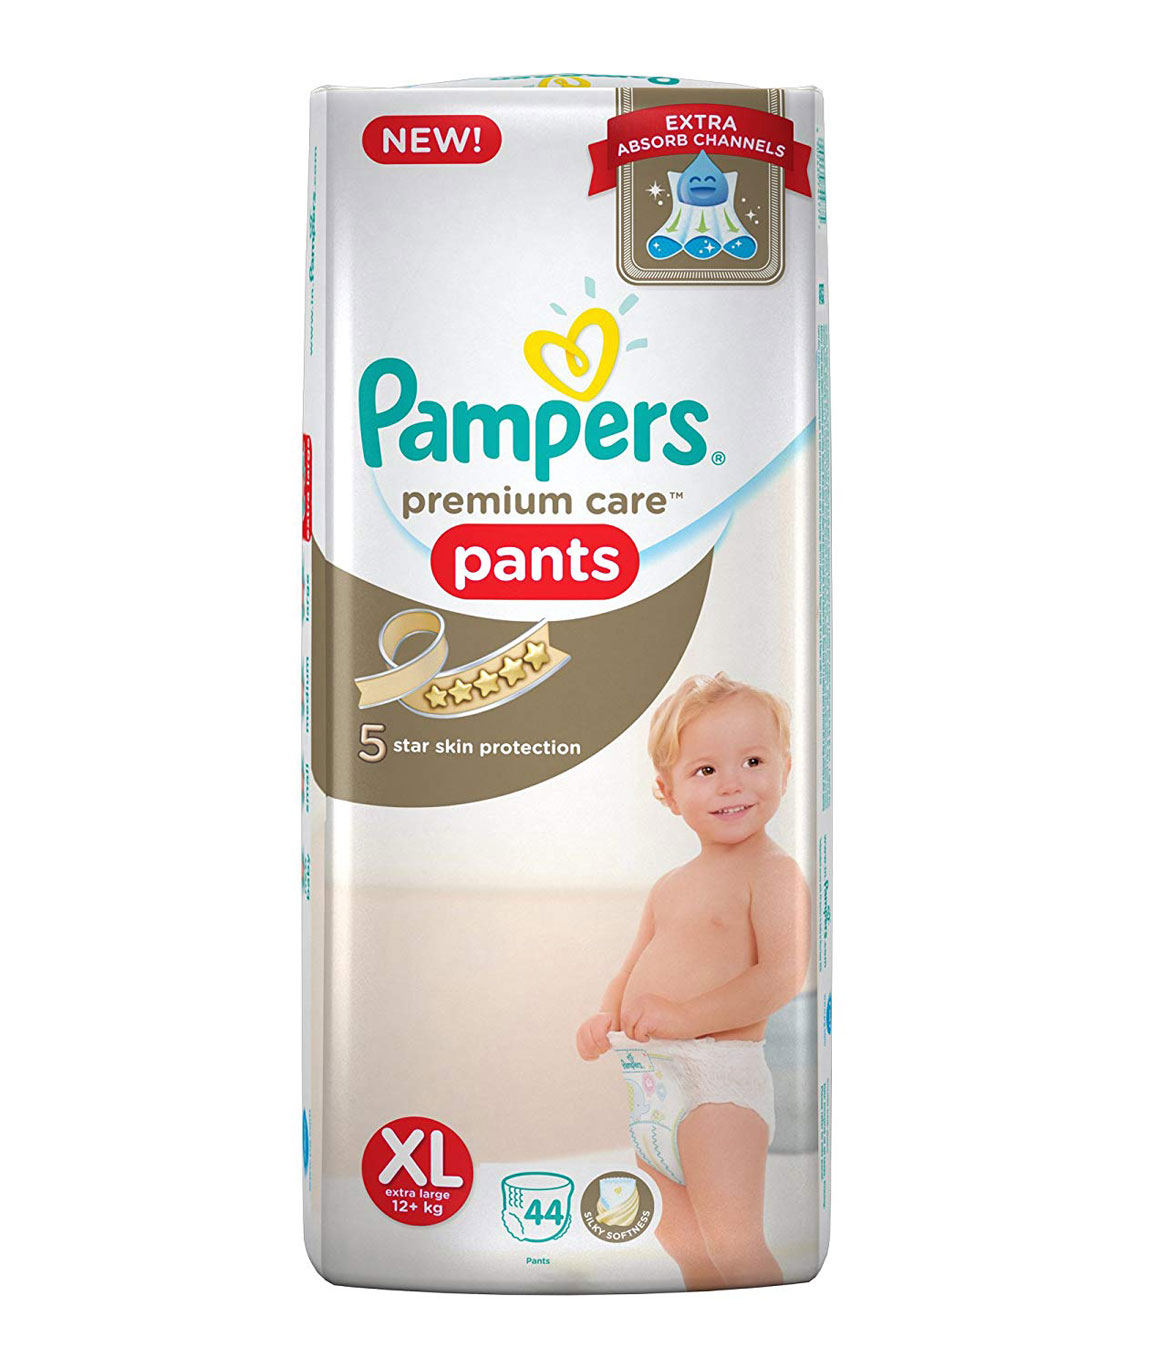 Pampers Premium Care Extra Large Size Diapers Pants (44 Count)